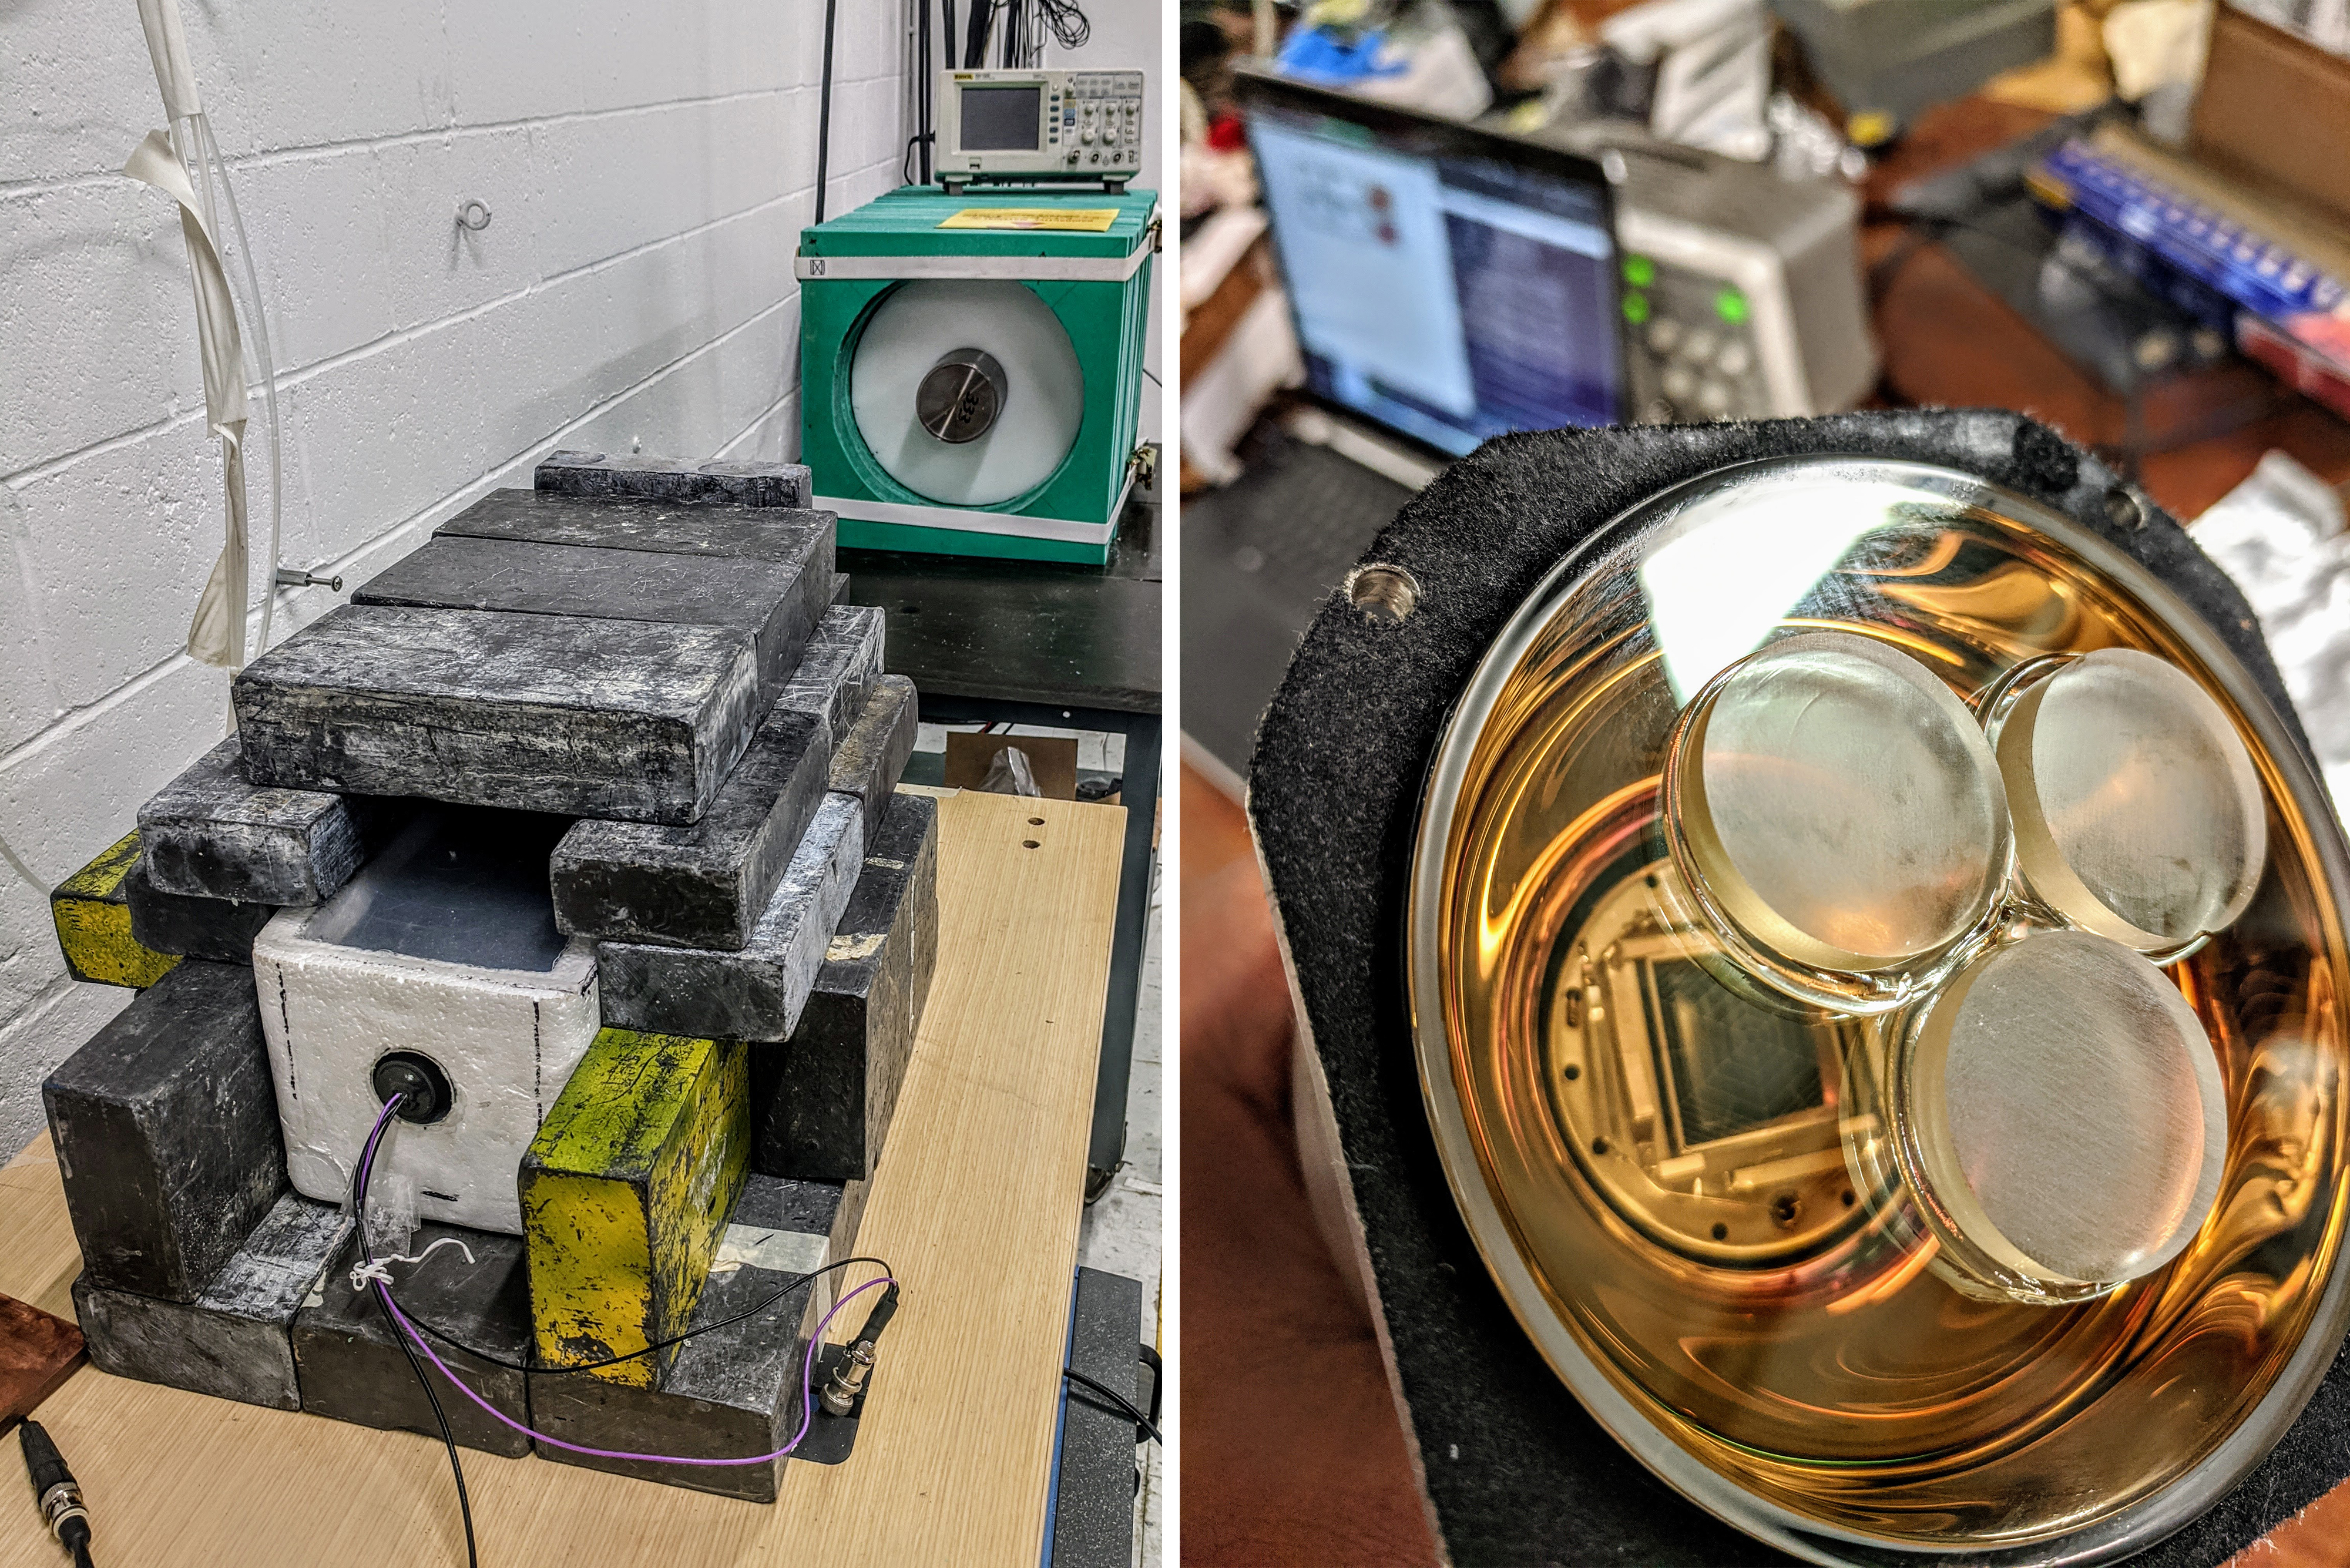 Portable technology offers boost for nuclear security, arms control